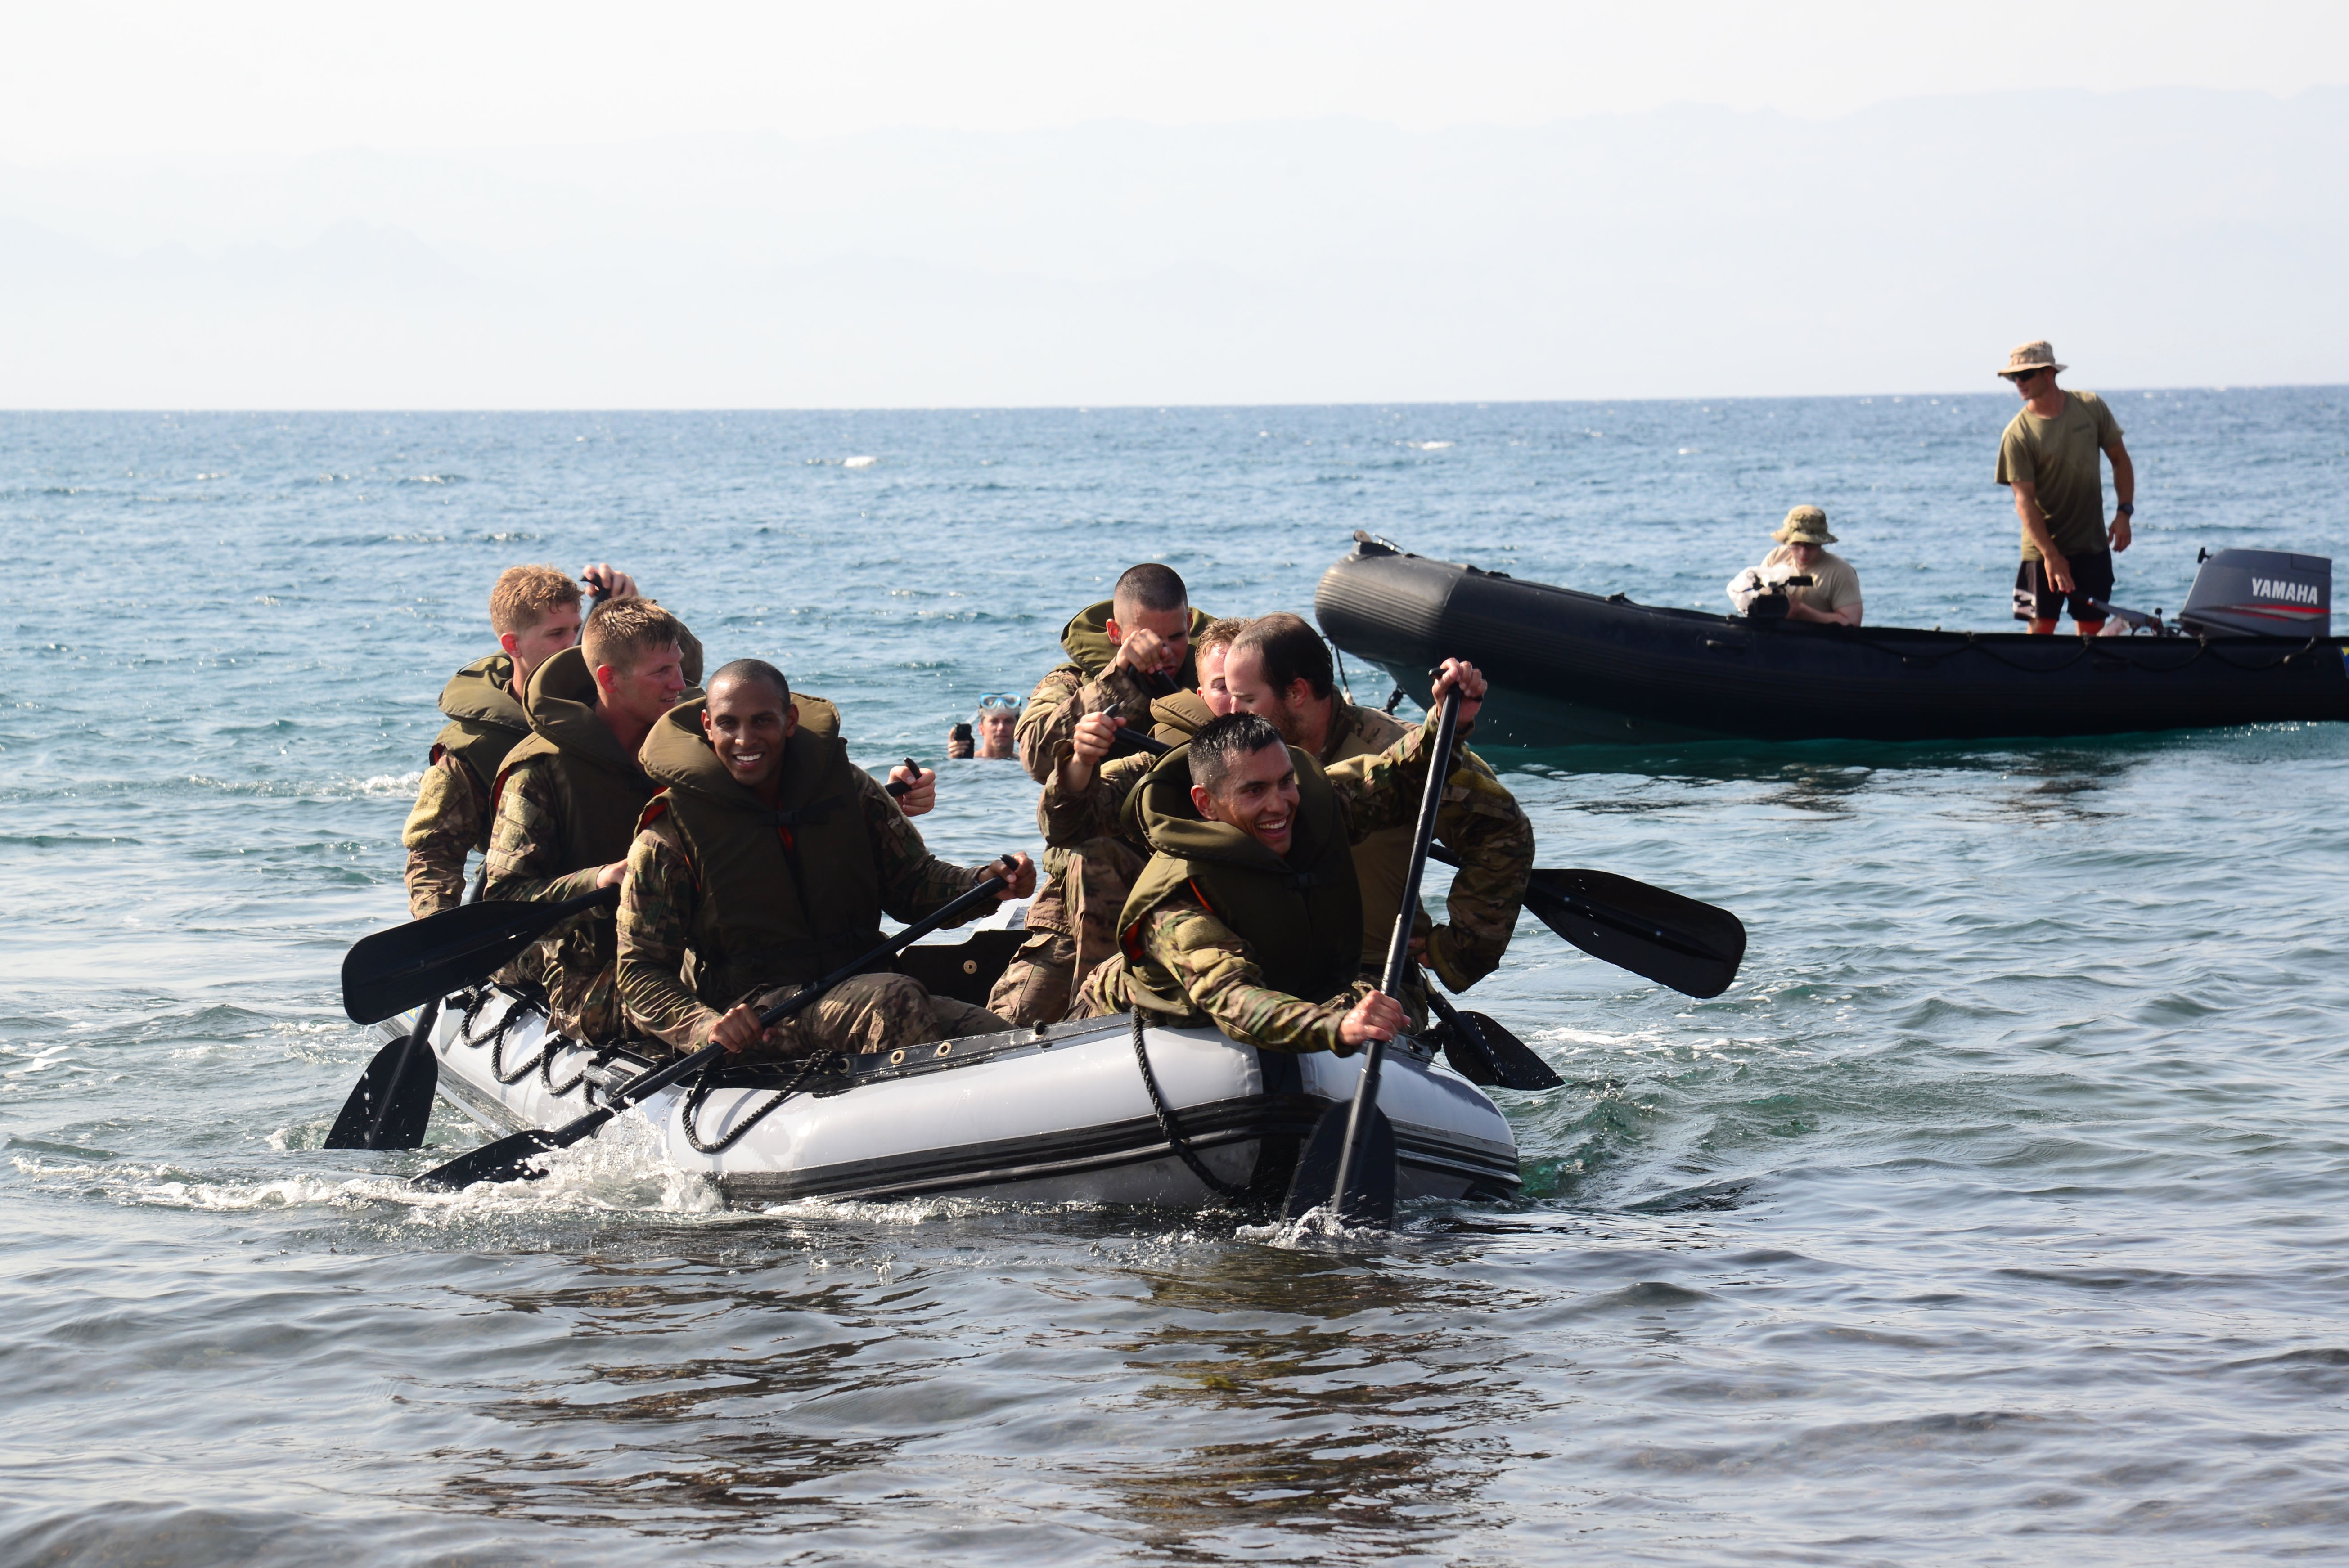 U.S. Army soldiers from the 2nd Battalion, 124th Infantry Regiment, paddle a zodiac watercraft across a beach during a water crossing exercise May 5, 2016, at Arta Plage, Djibouti. The soldiers completed the exercise as a team in less than 40 minutes. (U.S. Air Force photo by Senior Airman Benjamin Raughton/Released)